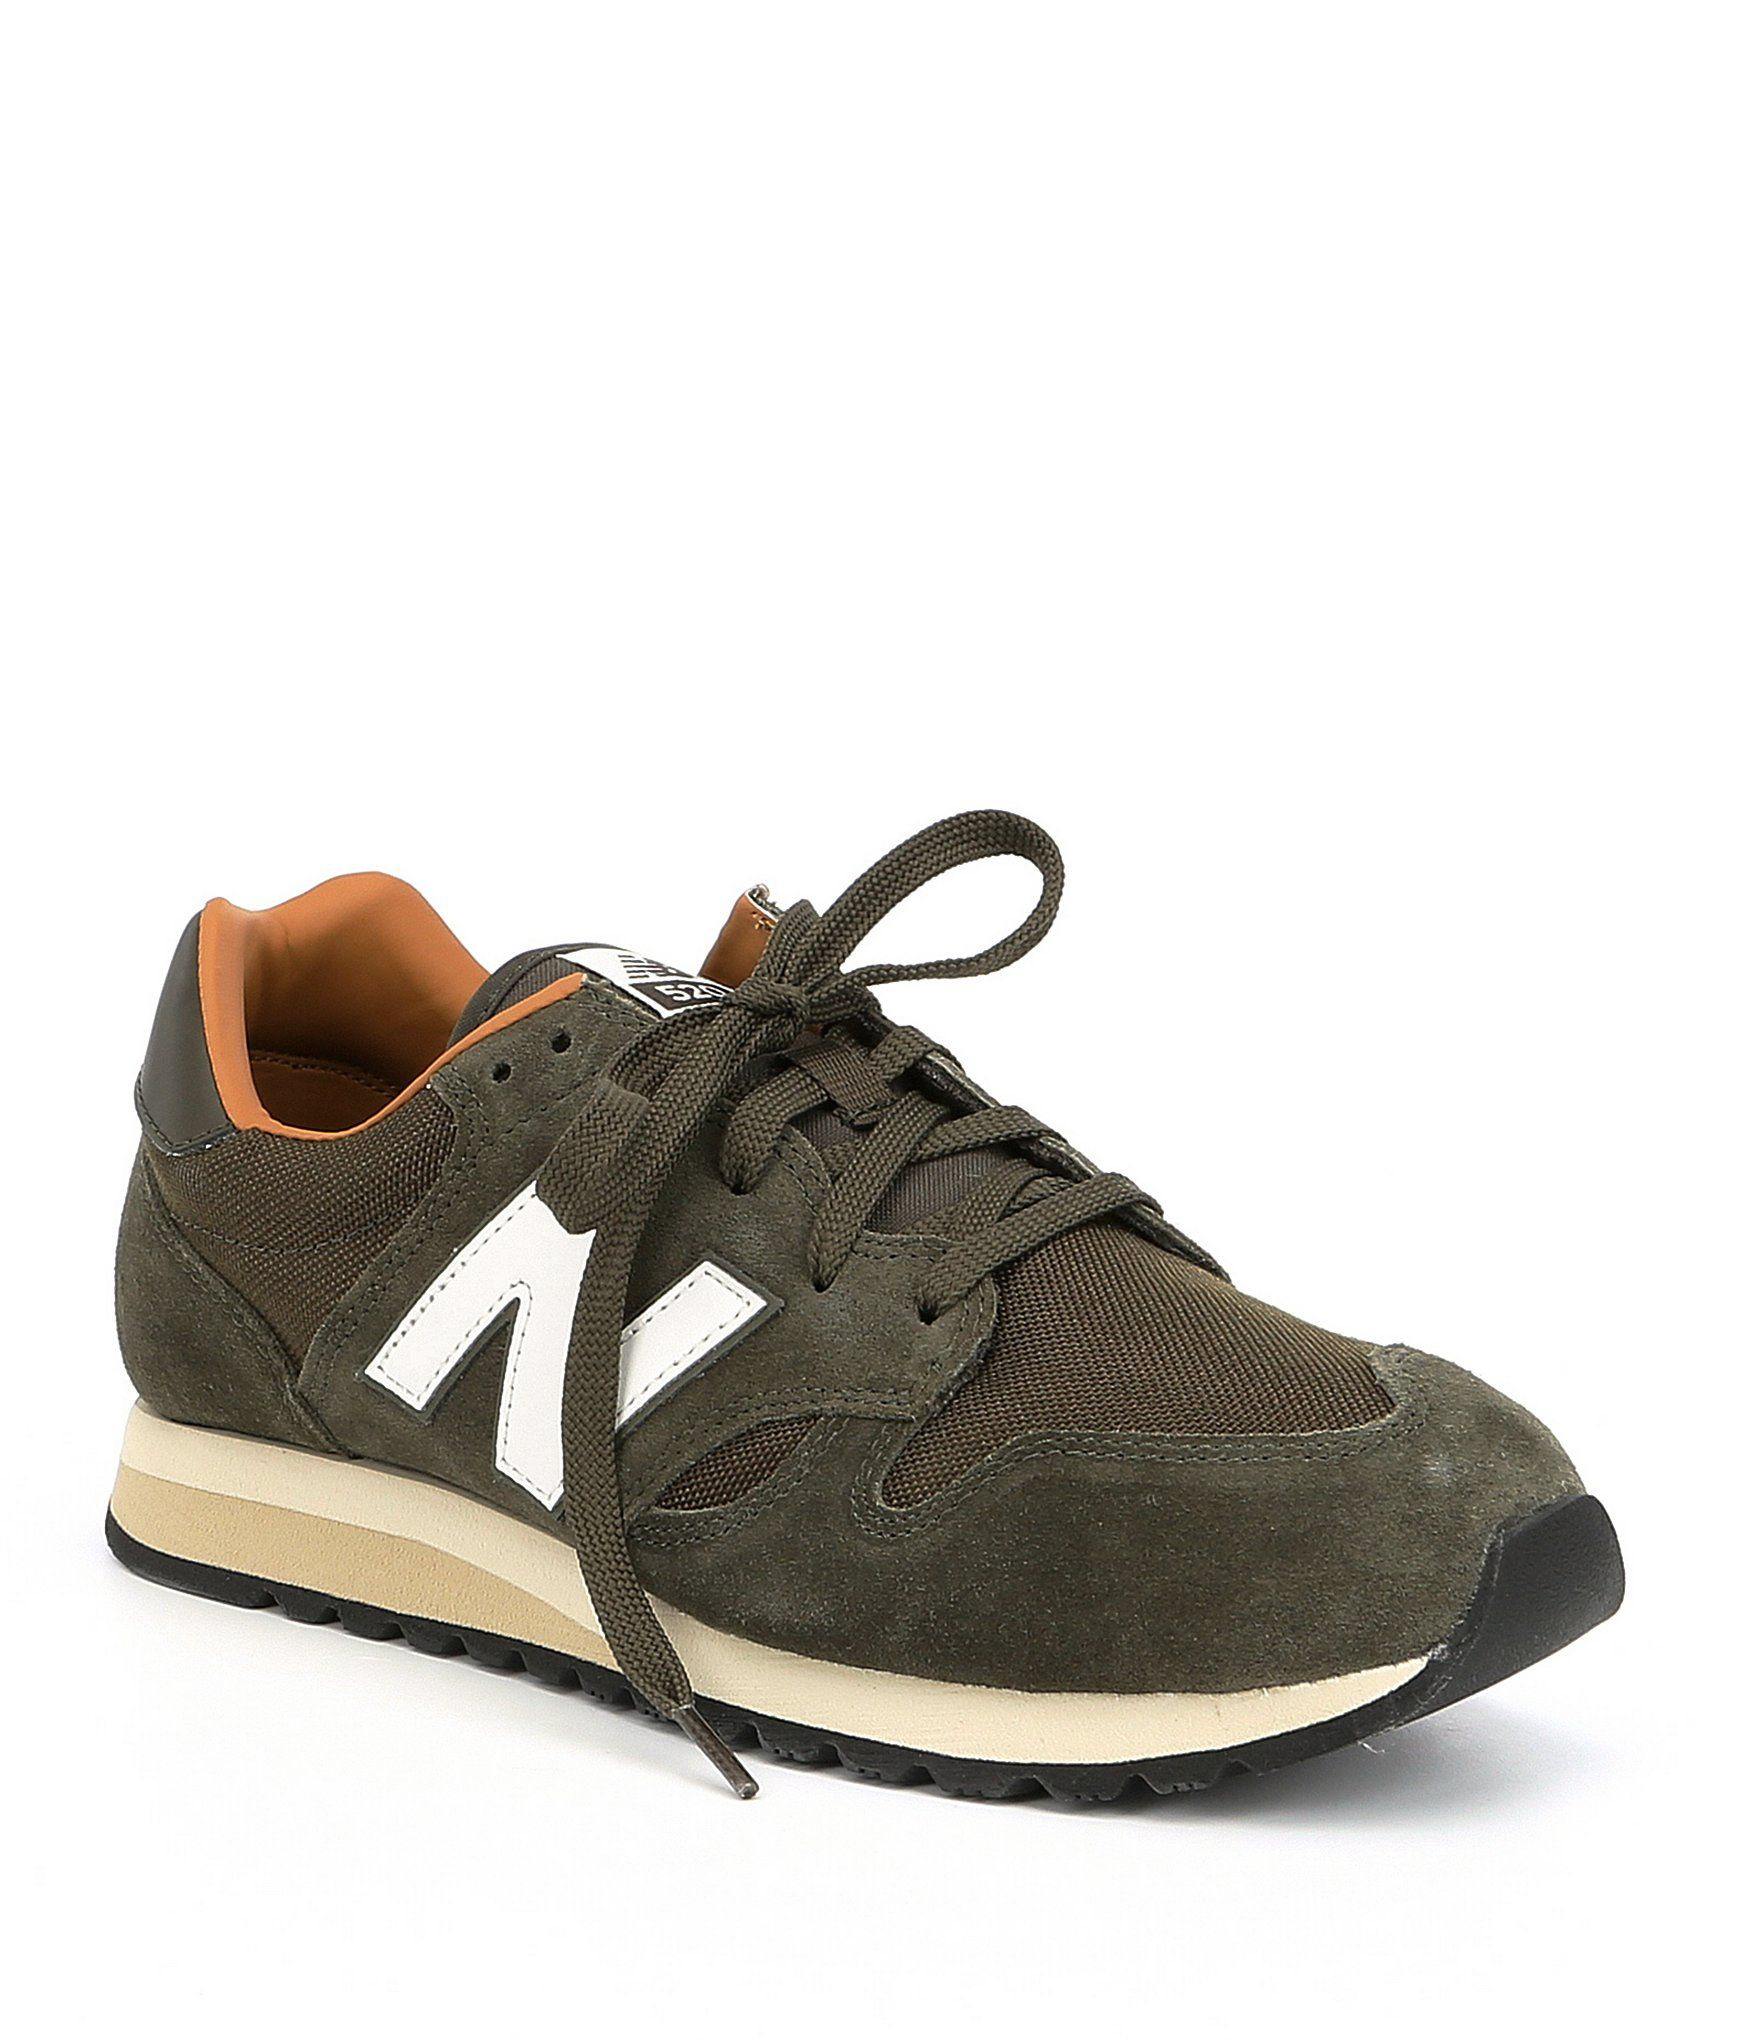 New Balance Mens 520 Suede and Mesh Sneakers #Dillards | Sneakers ...